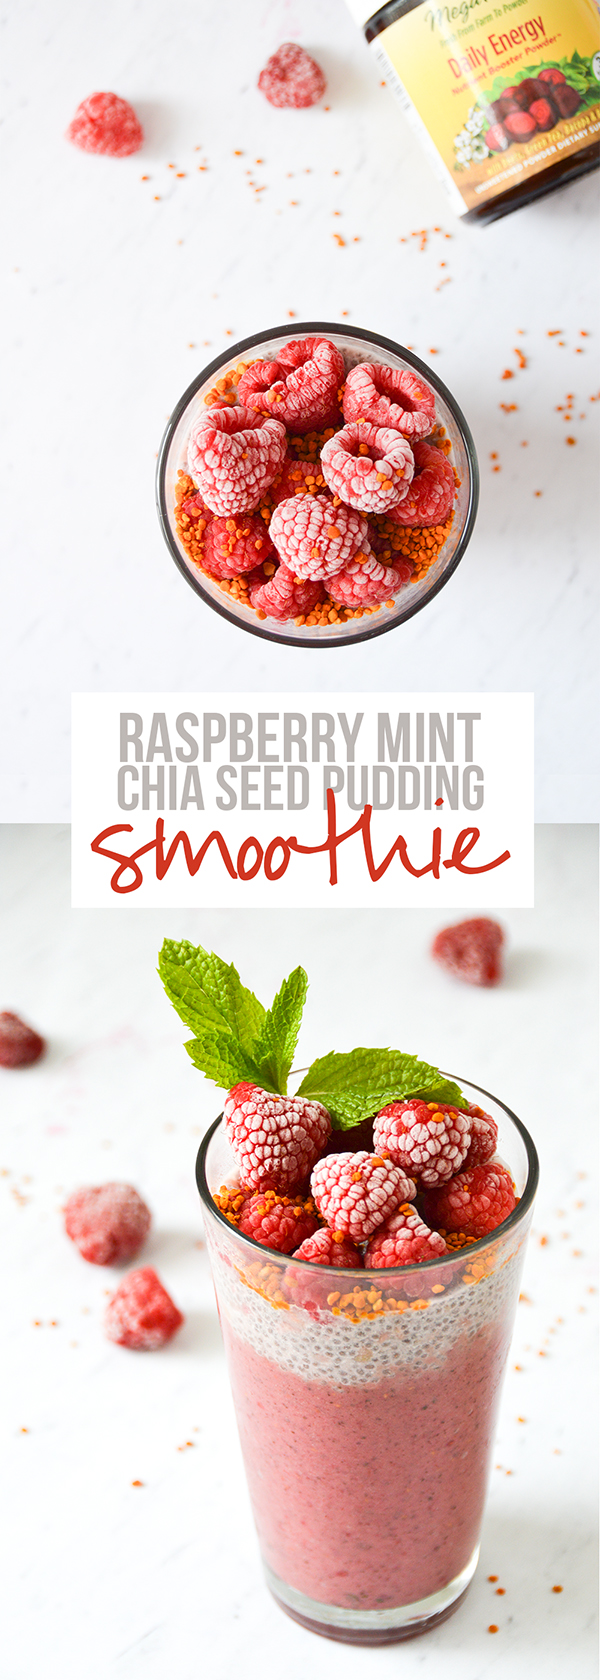 Slurp down this raspberry mint chia seed pudding smoothie with a straw ... then a spoon!